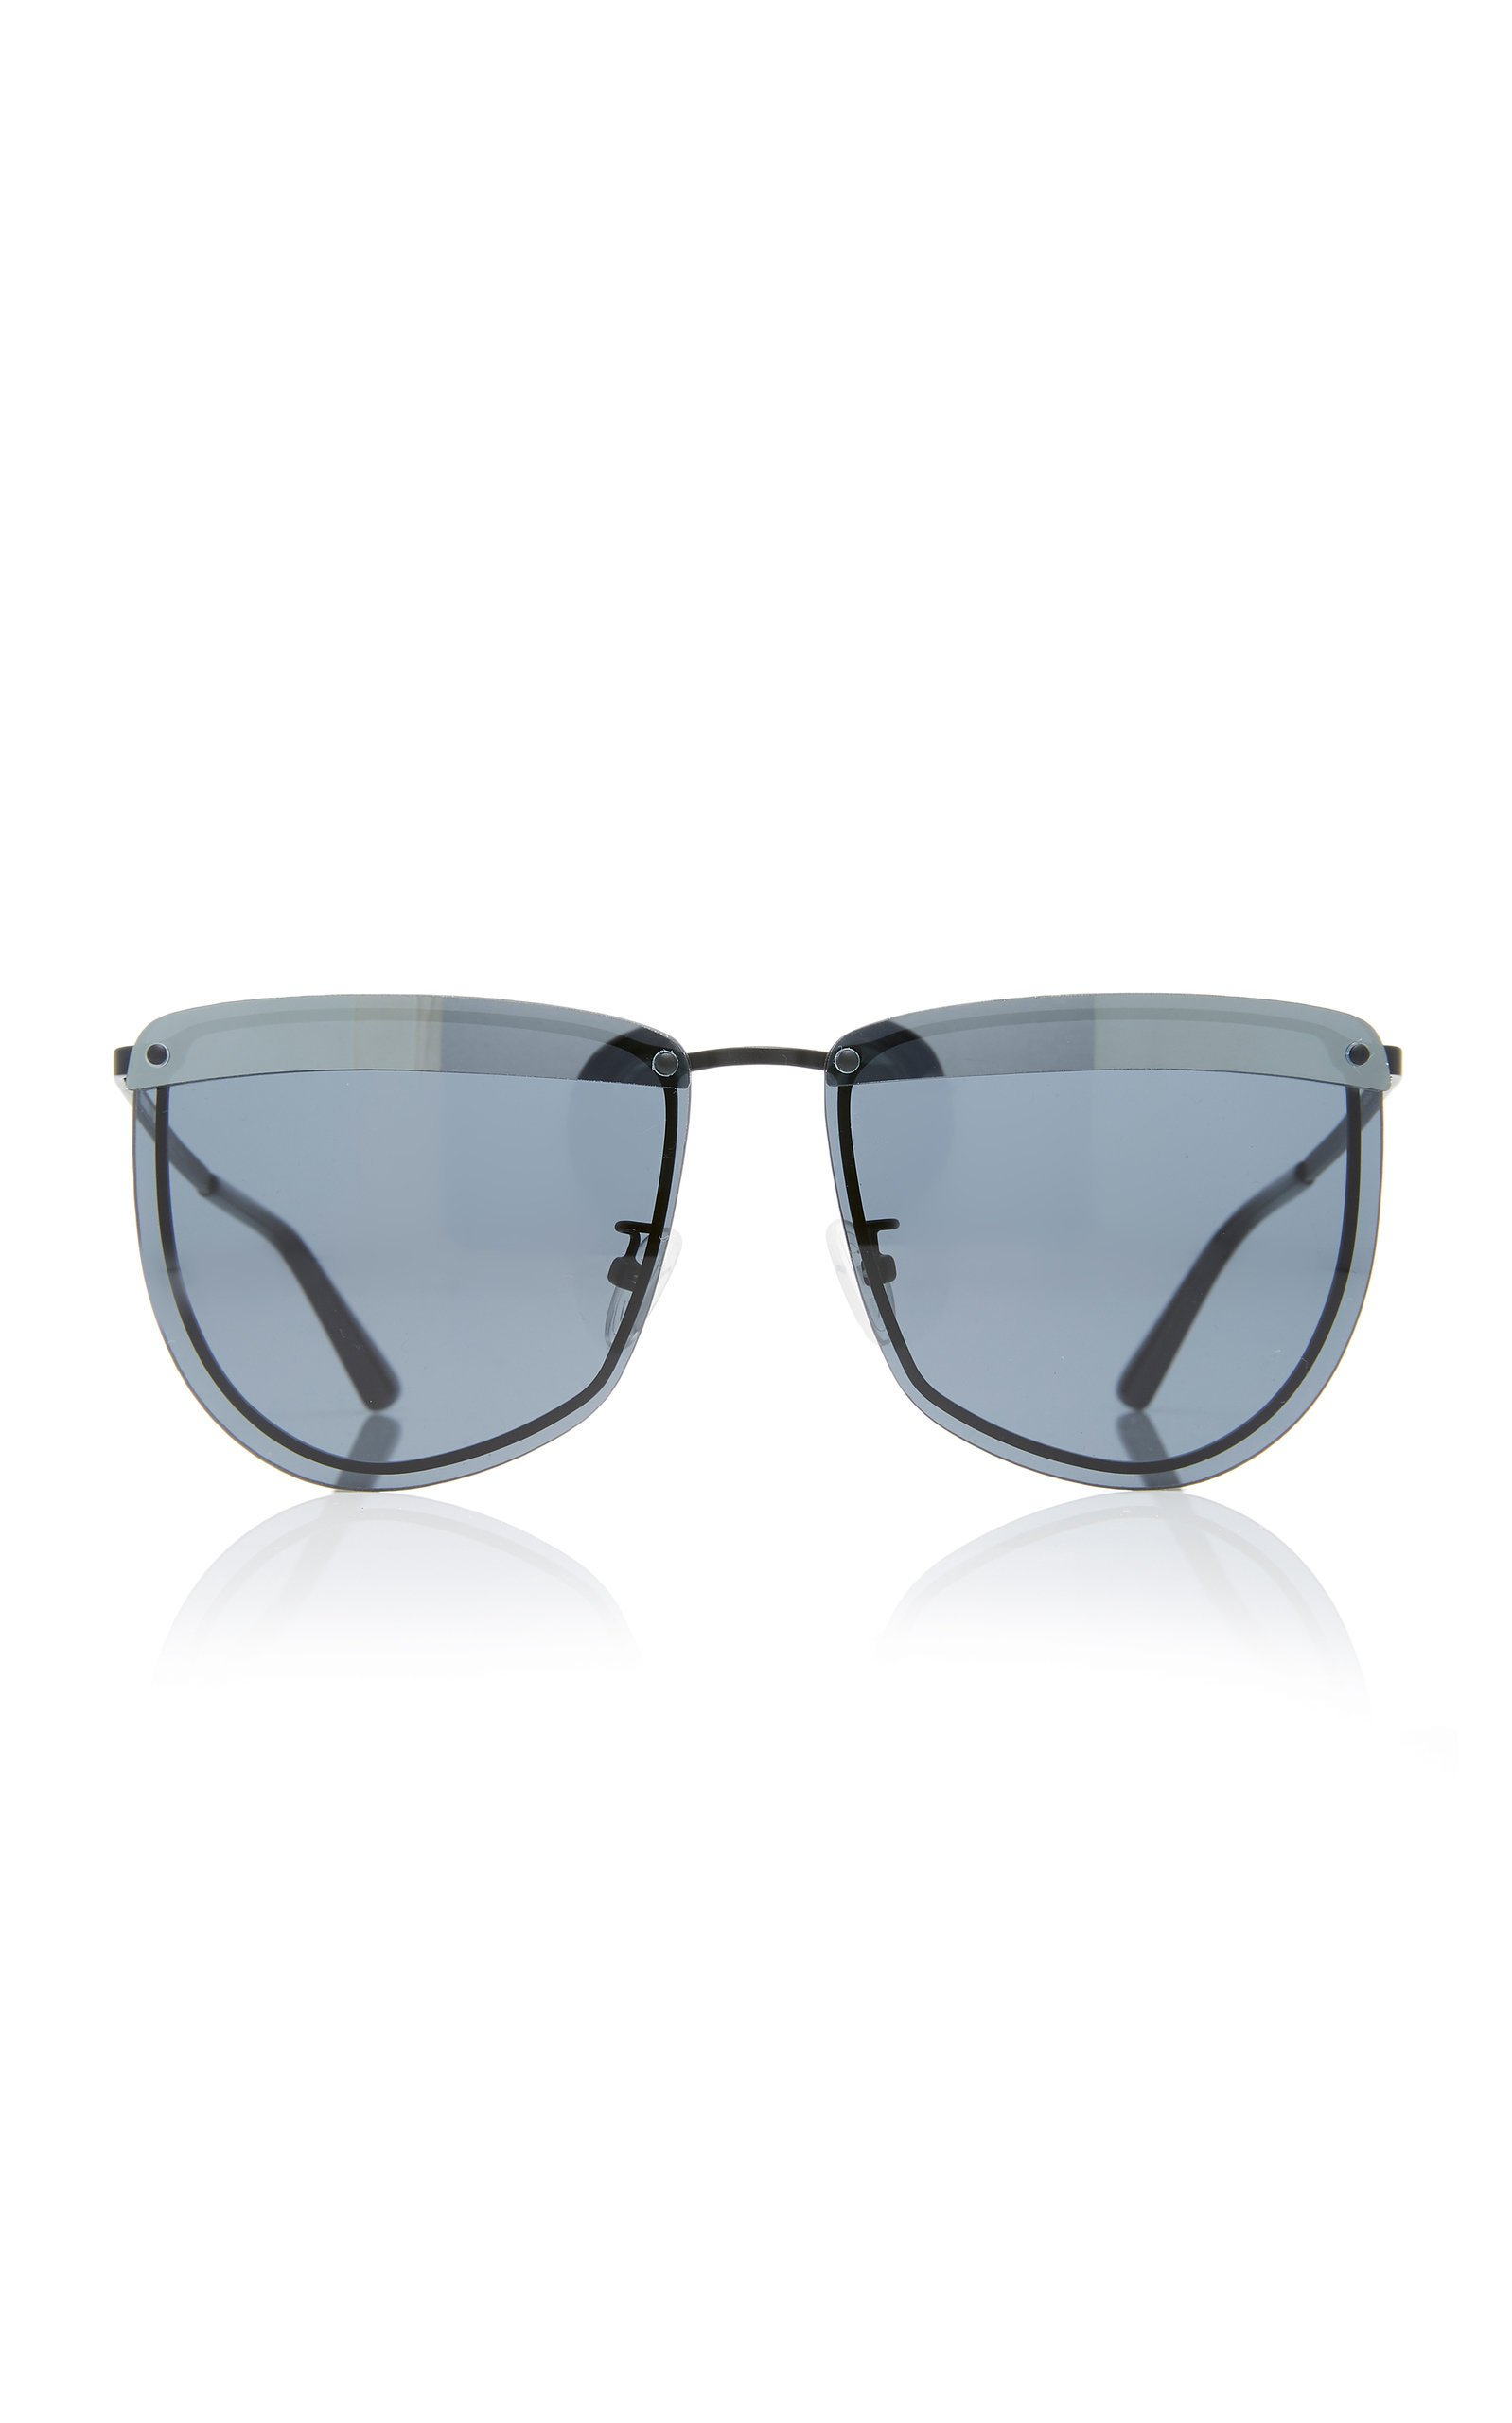 MCQ Sunglasses Rounded Metal Cat-Eye Sunglasses